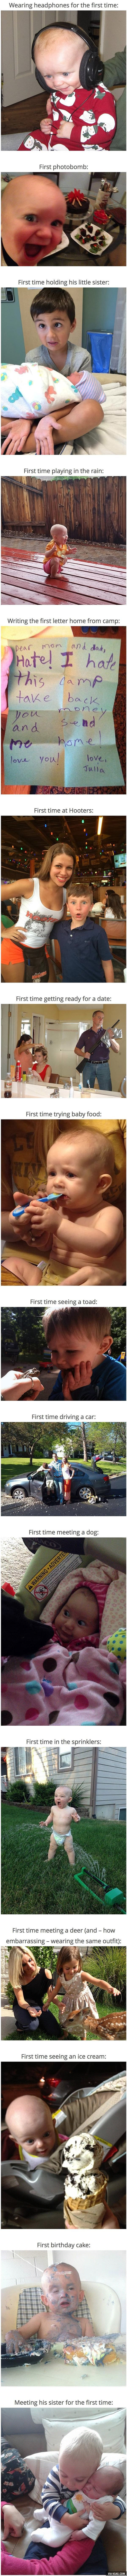 16 Kids Doing Stuff For The First Time